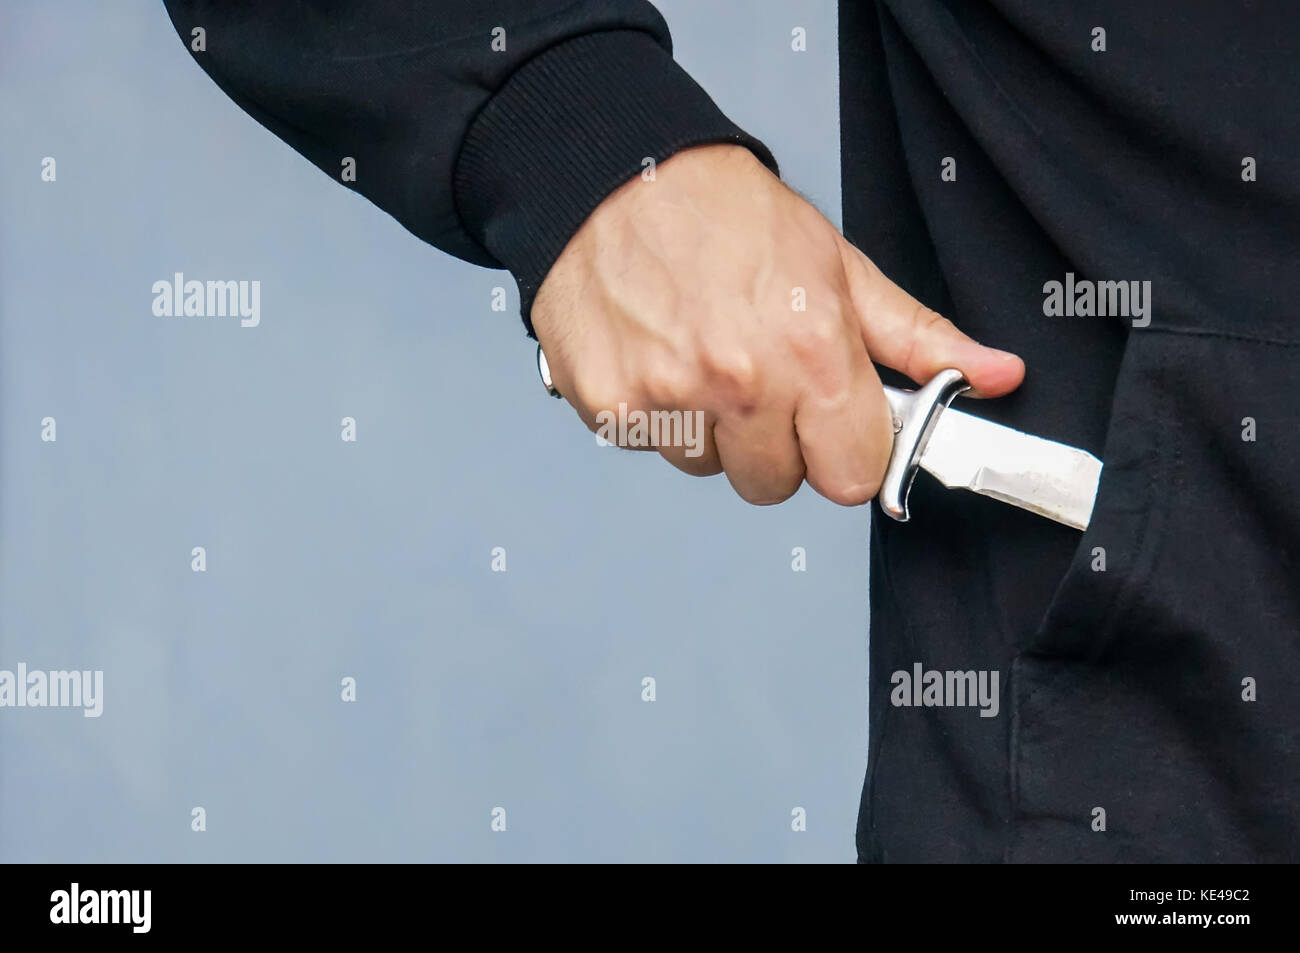 Hand from the pocket of the black jacket pulls out a folding knife close up. Extortion and intimidation. The concept - Stock Image